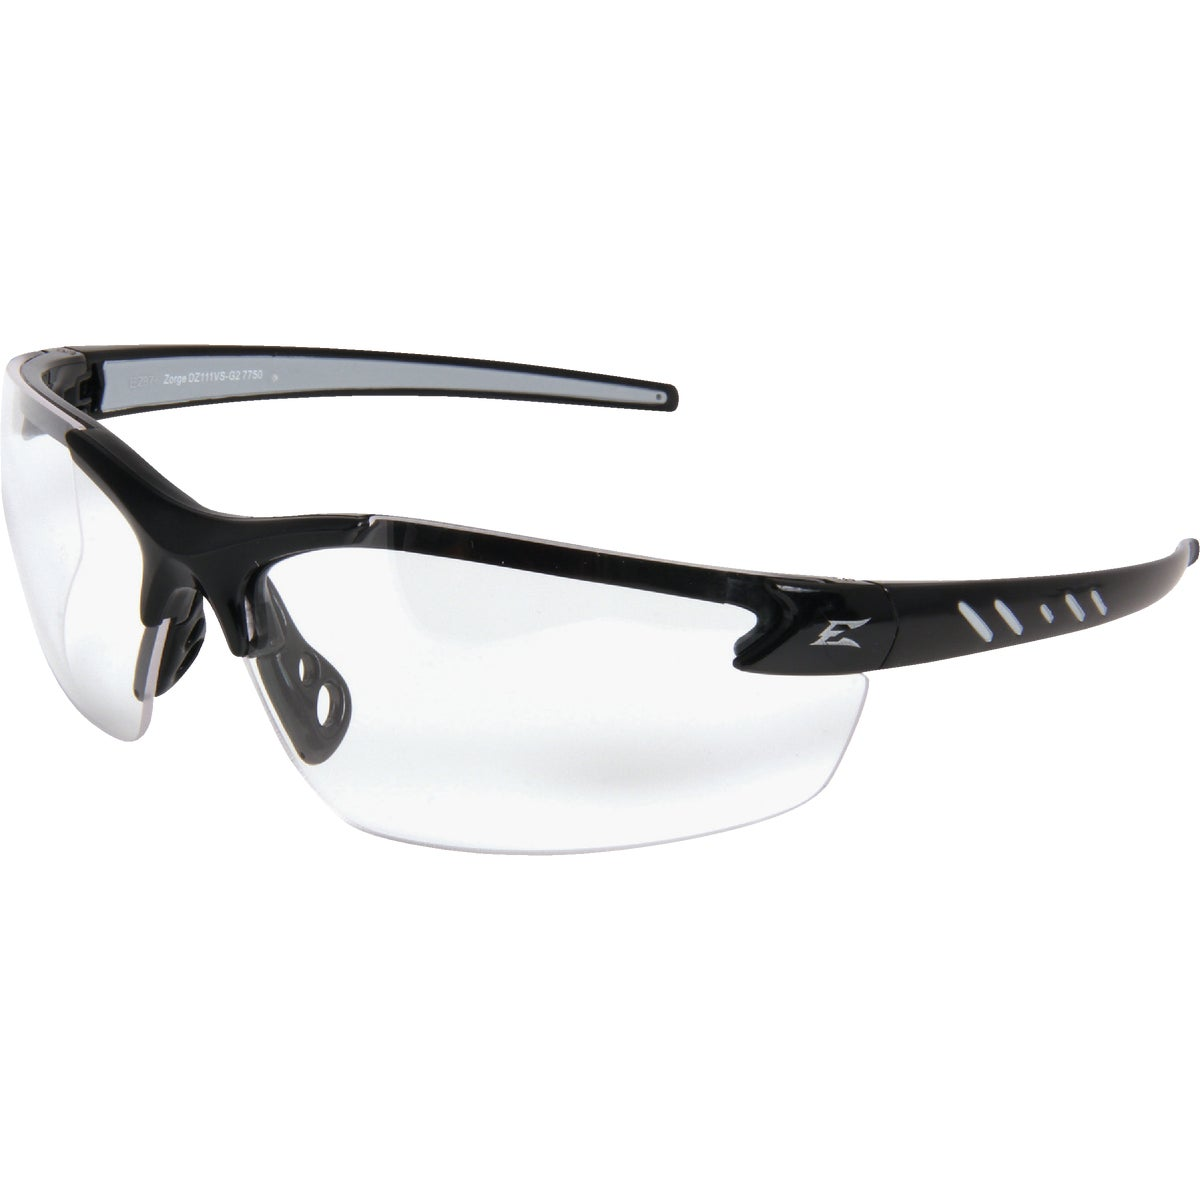 ZORGE BLACK/CLEAR LENS - DZ111 by Edge Eyewear